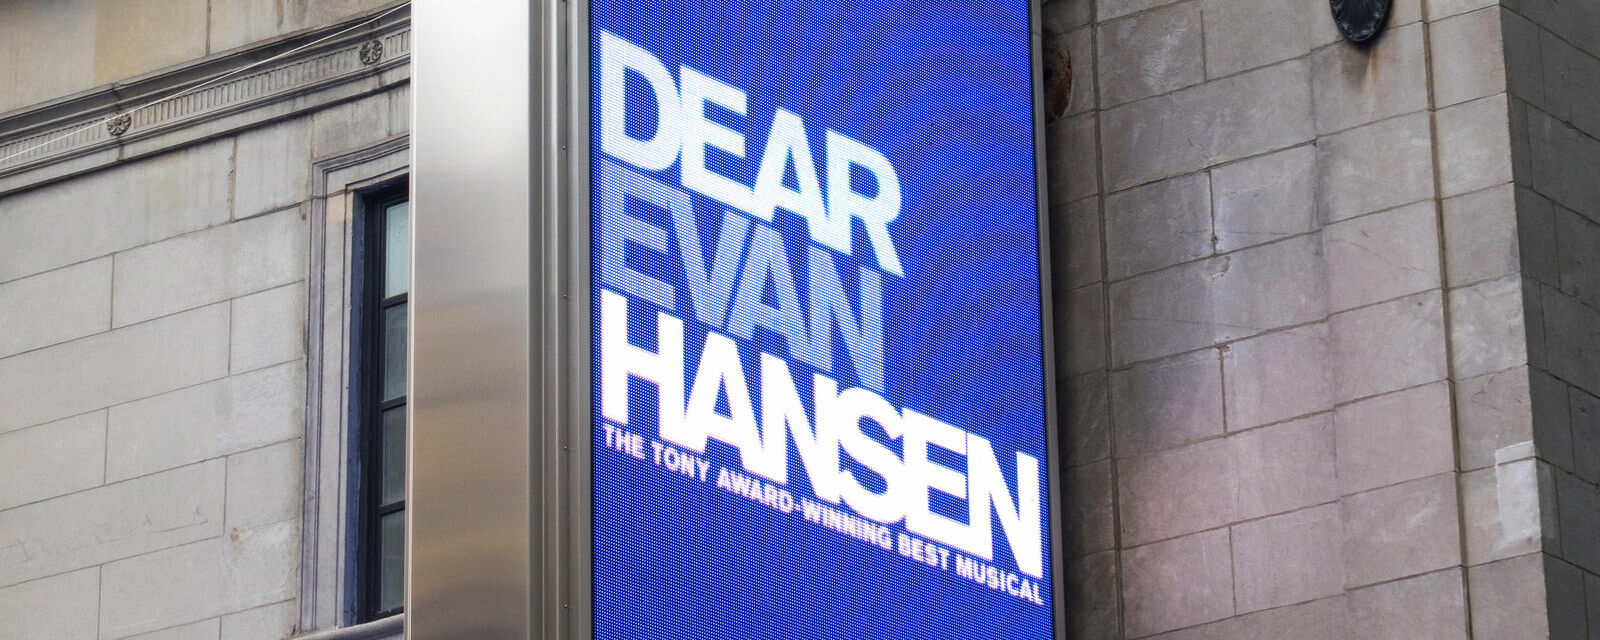 Dear Evan Hansen New York